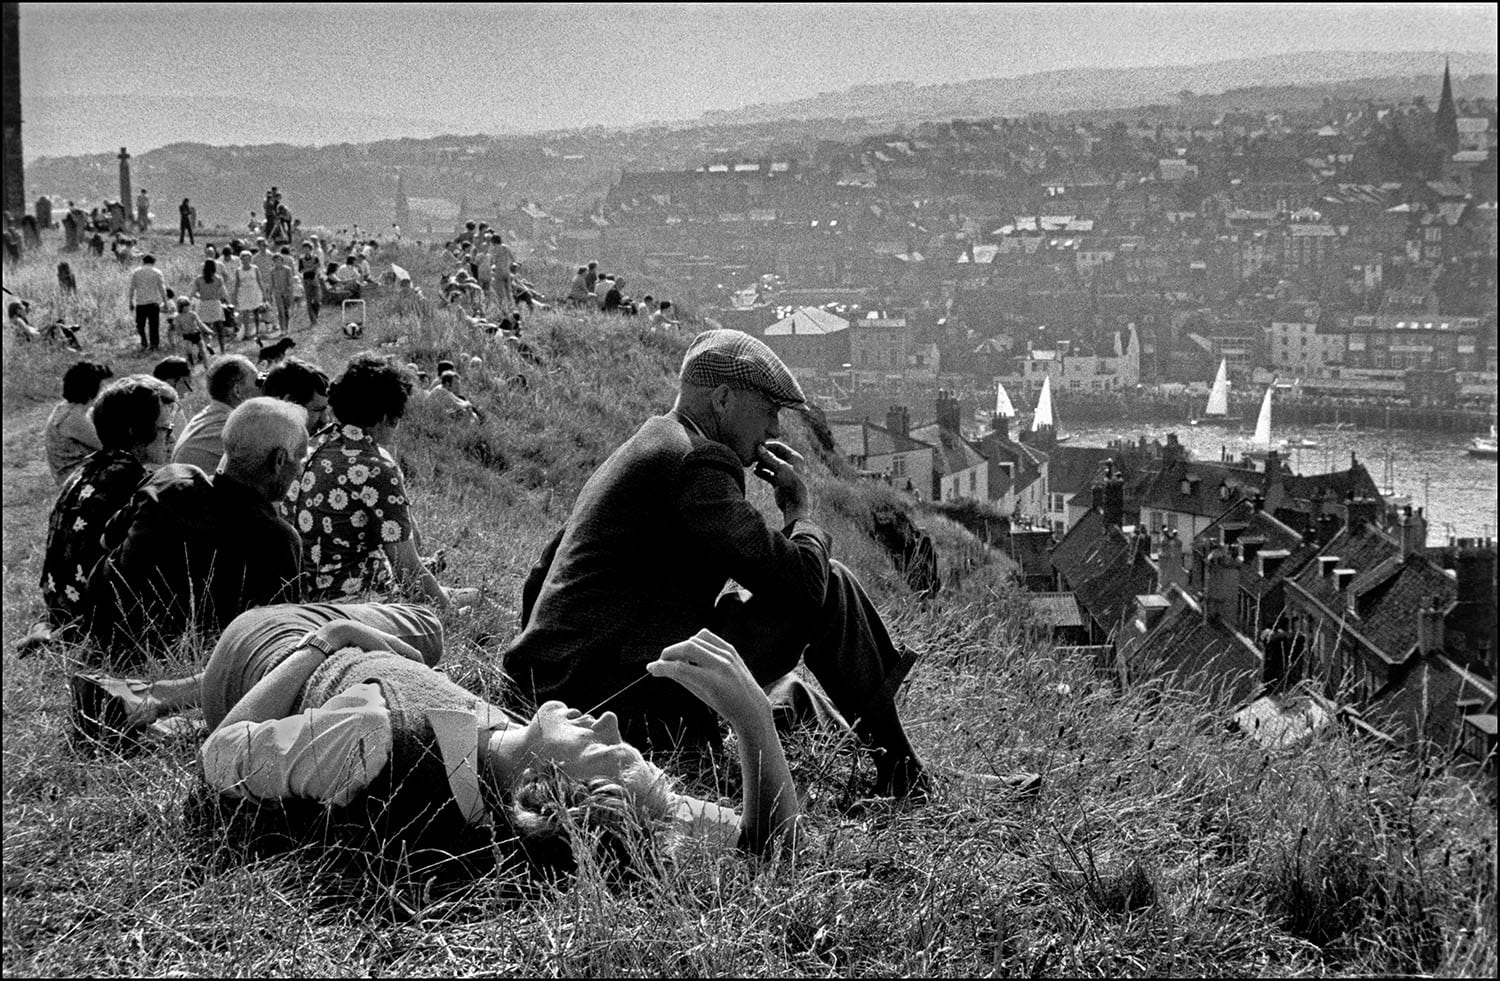 Whitby, Yorkshire © Ian Berry/Magnum